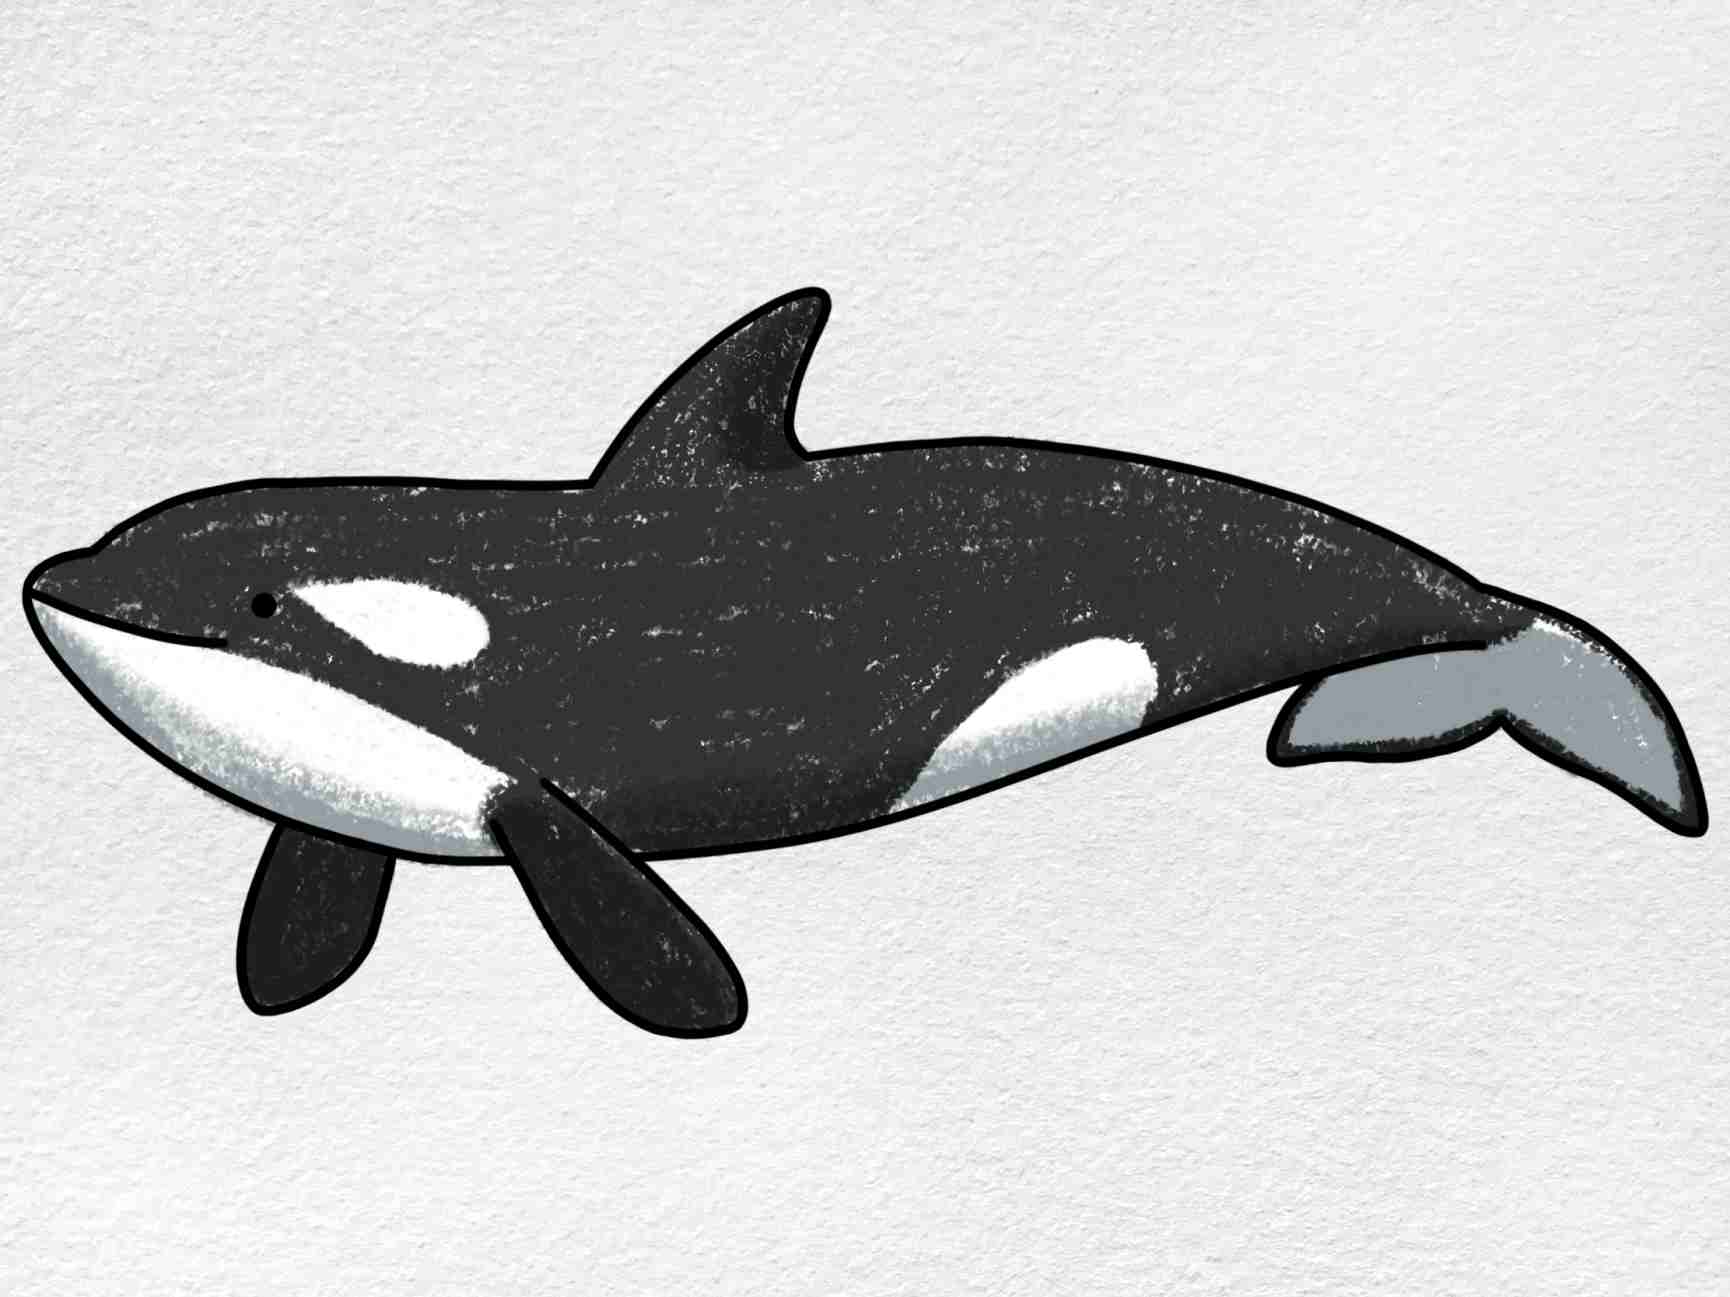 Killer Whale Drawing: Step 6